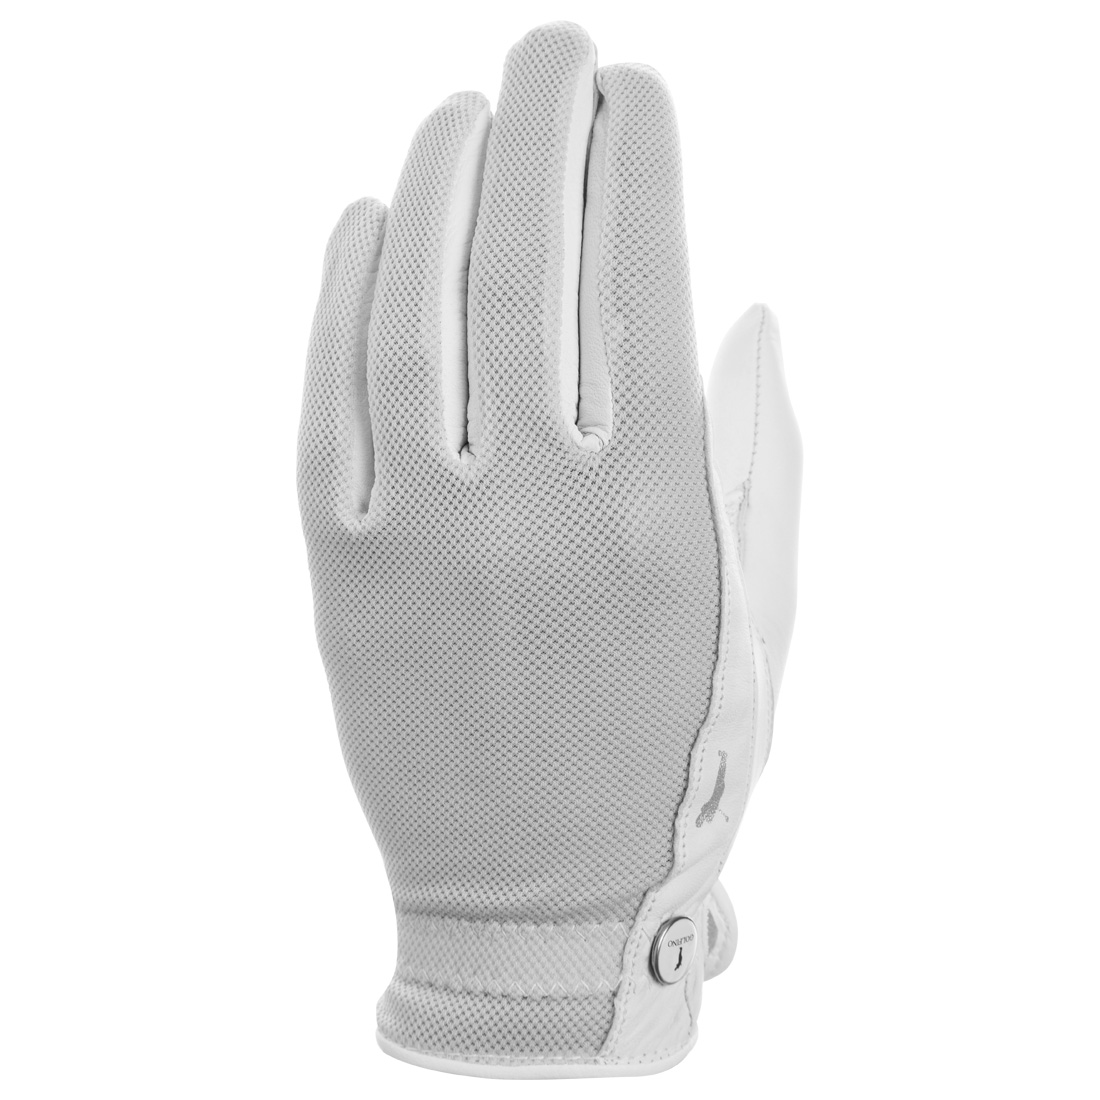 Ladies' golf gloves with mesh